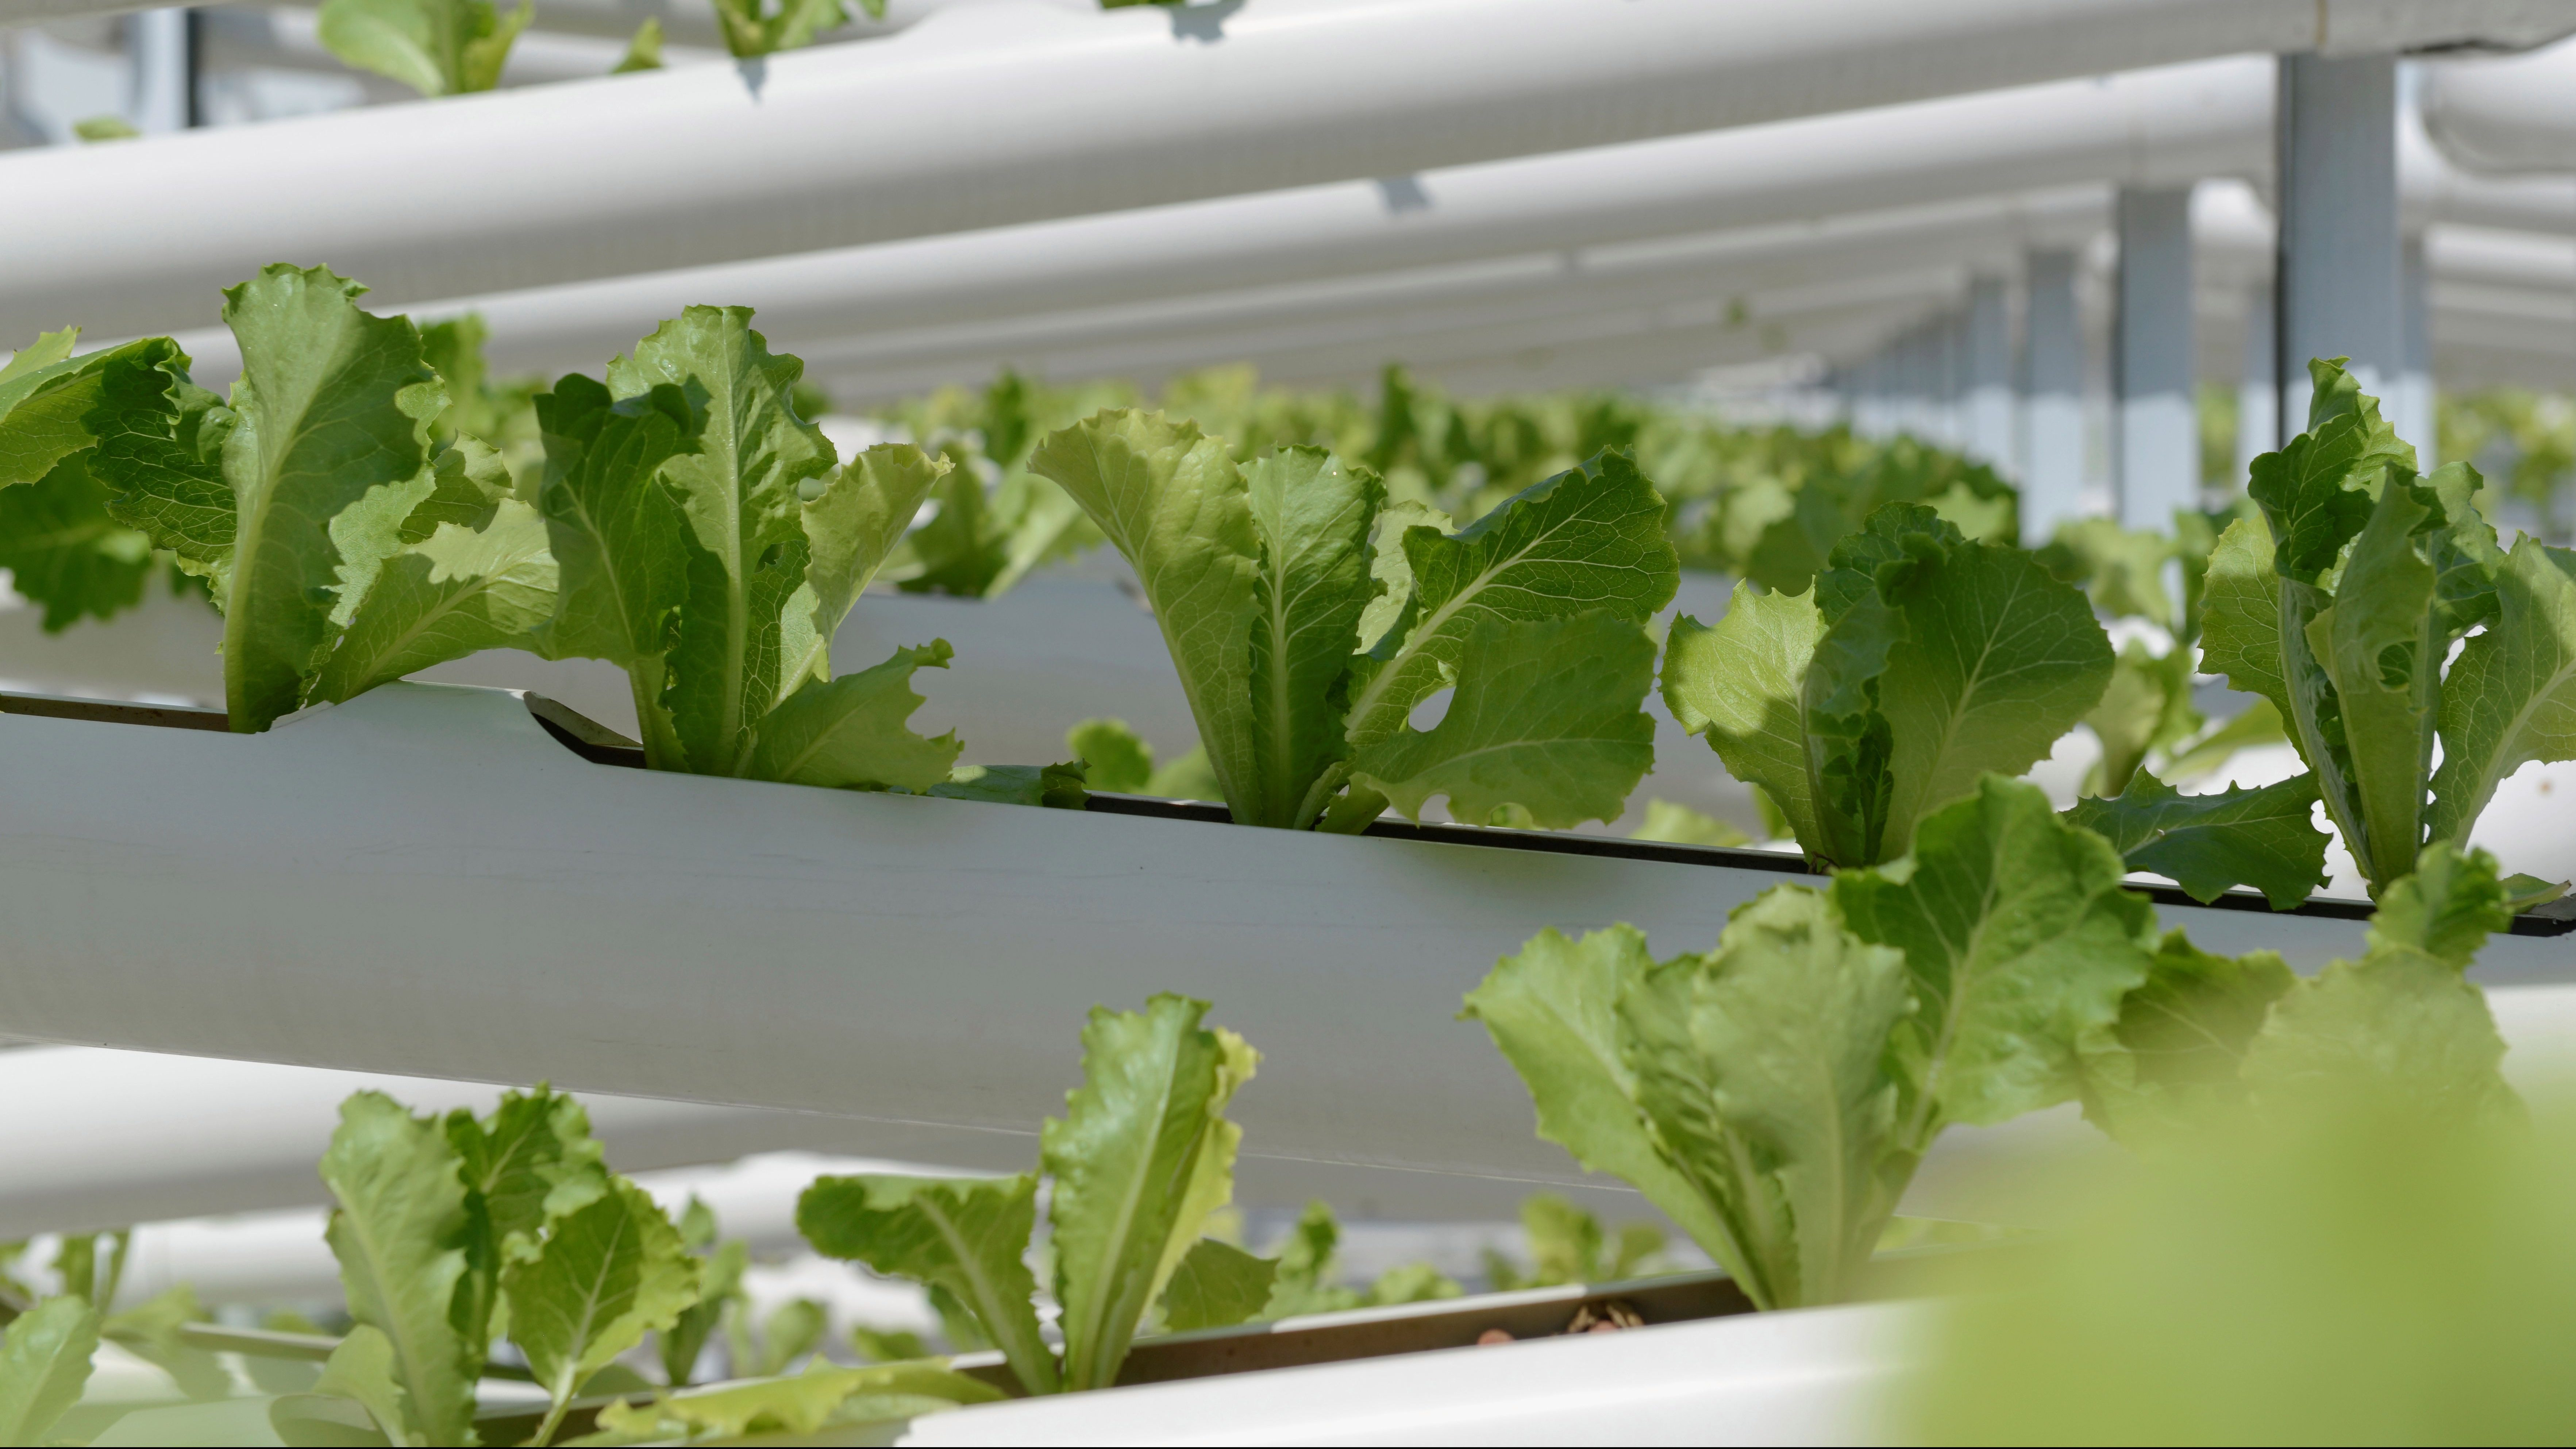 Organic lettuces are seen on rows of growing towers made out of PVC pipes at Citiponics' urban farm on the rooftop of a multi-storey carpark in western Singapore